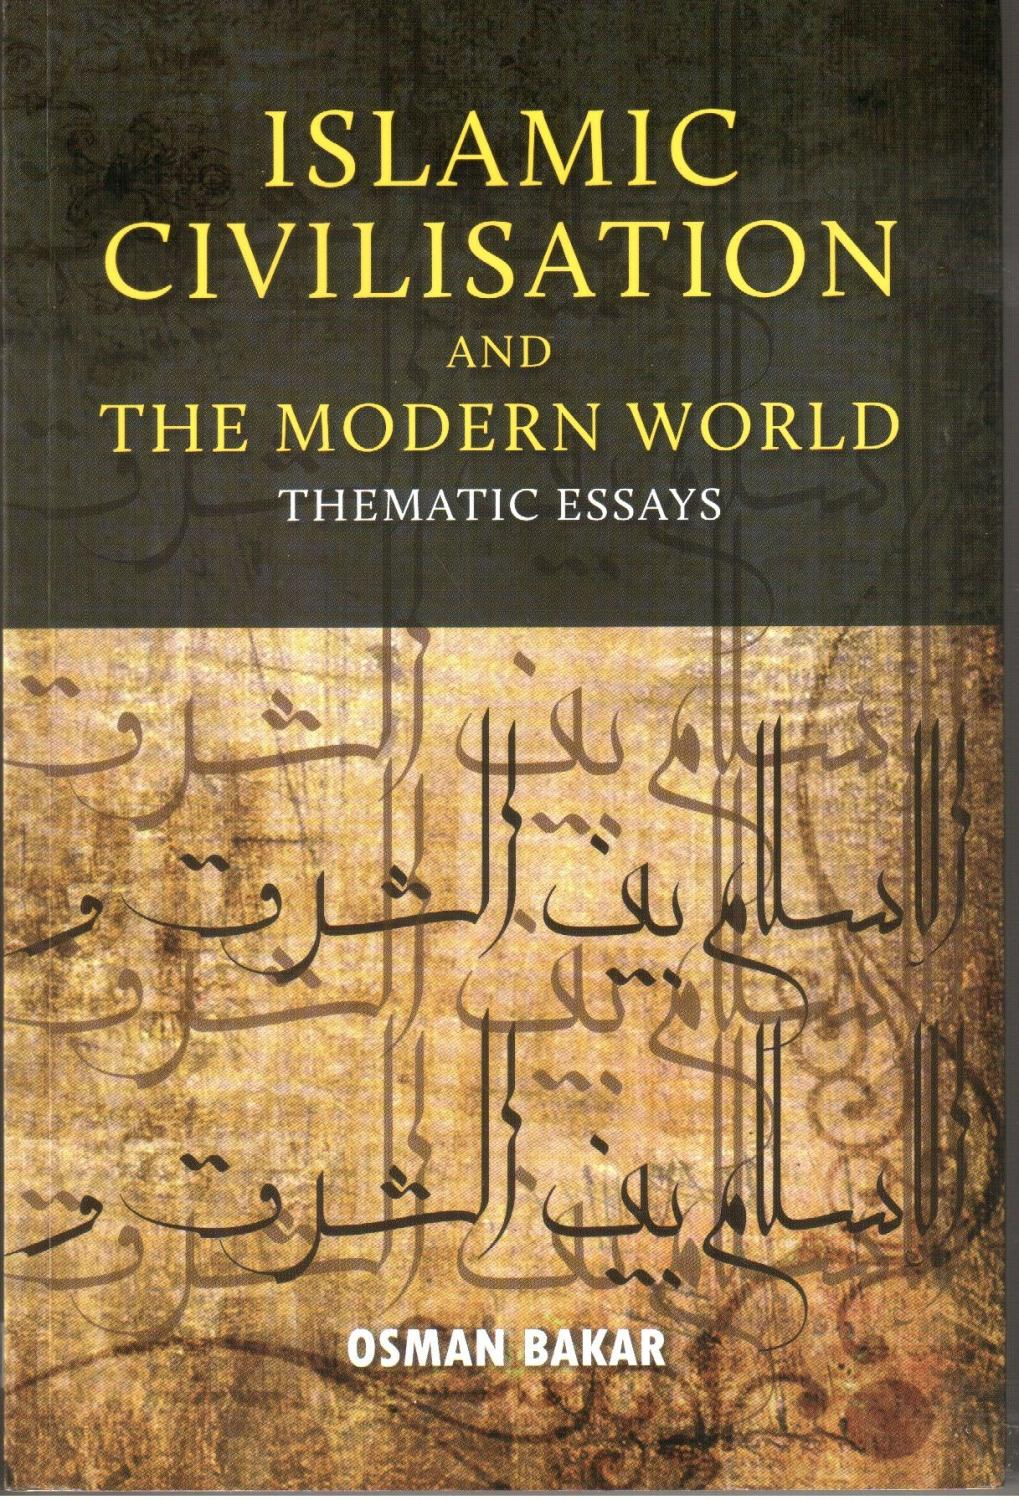 islamic civilisation and the modern world thematic essays by  islamic civilisation and the modern world thematic essays osman bakar